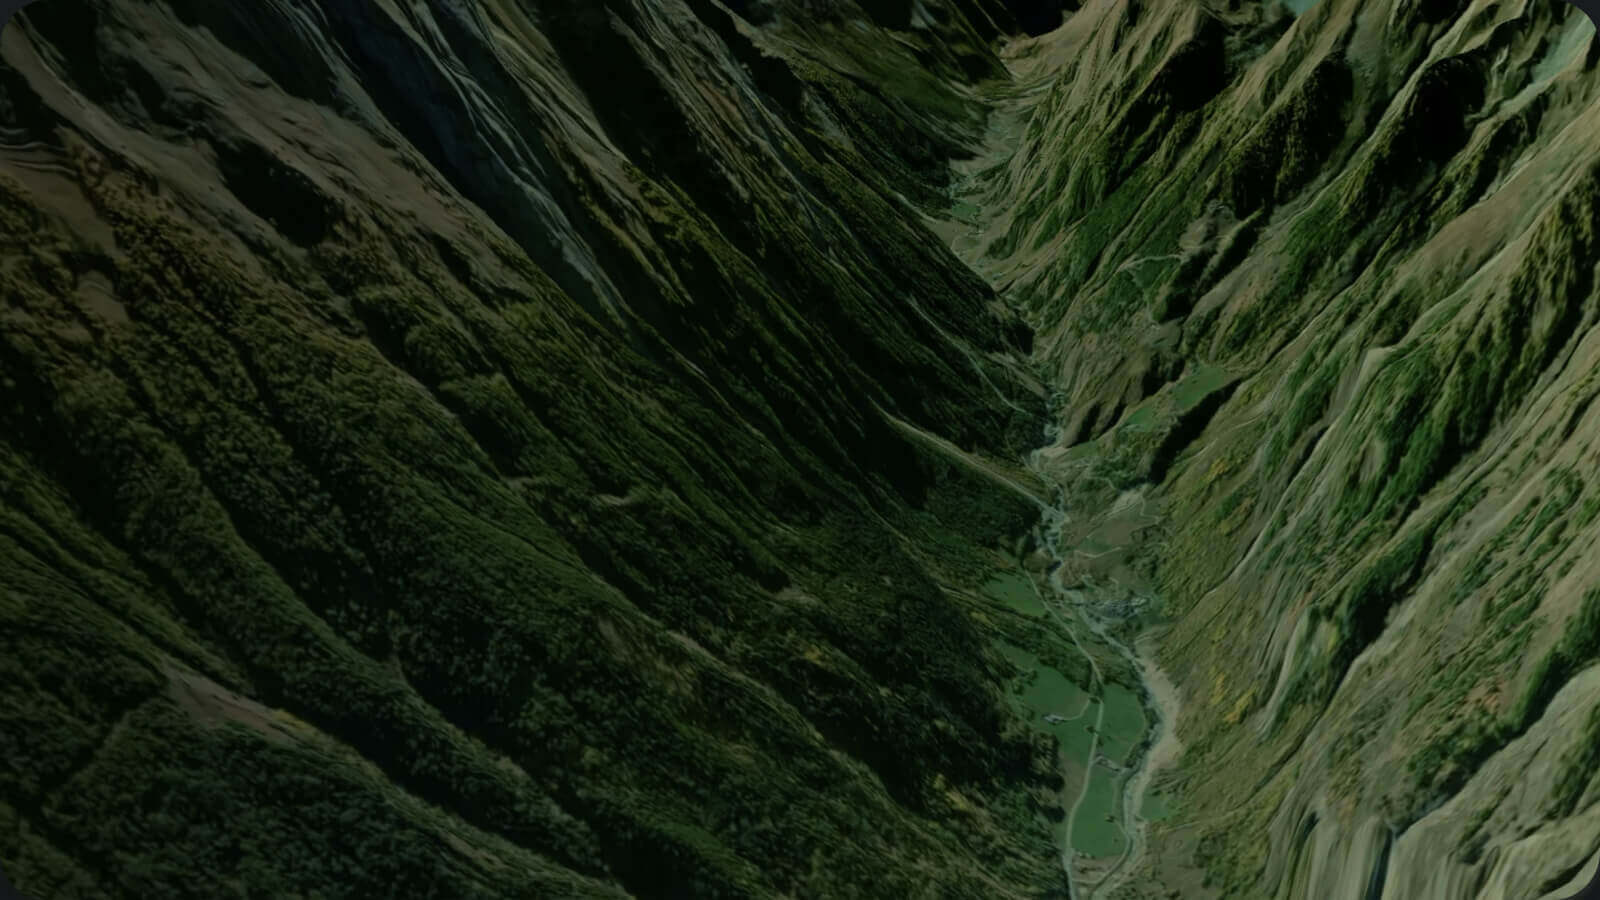 Mapbox photorealistic 3D map of mountains.